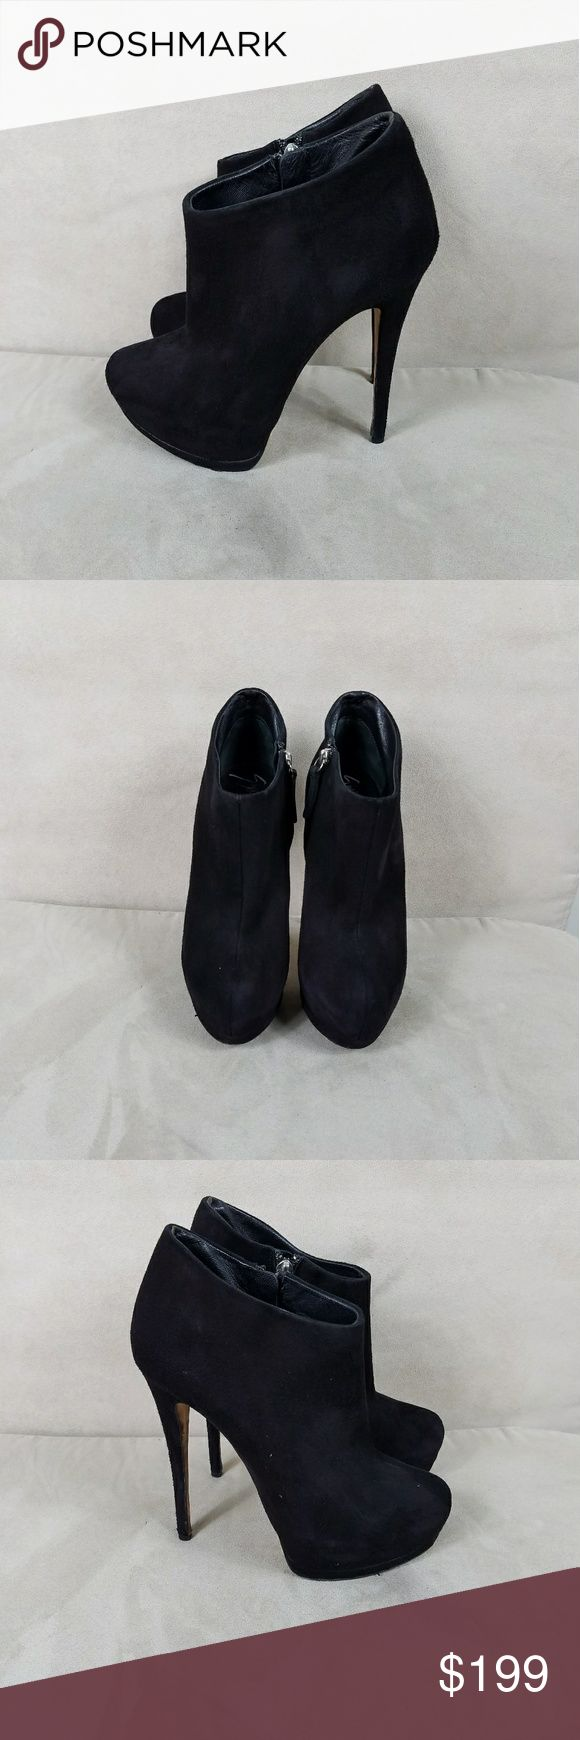 Giuseppe Zanotti Suede Boots In excellent, preowned condition! They were very well cared for and come from a non smoking, pet free home. These are a EU 38 which is a US 7.5. Giuseppe Zanotti Shoes Ankle Boots & Booties